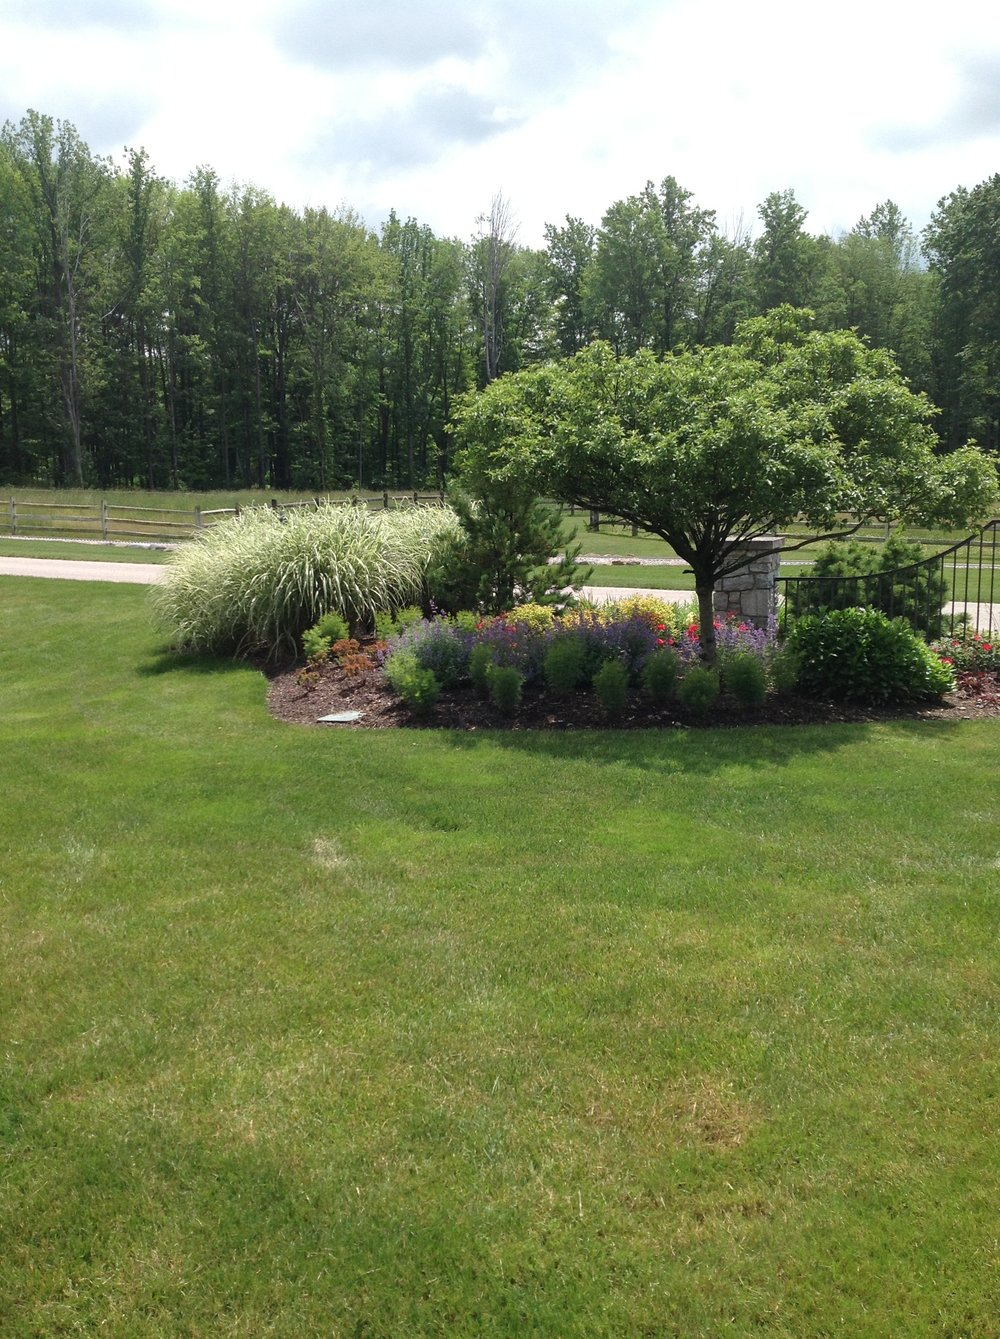 Unilock landscaping companies with top lawn fertilzer in Novelty, OH